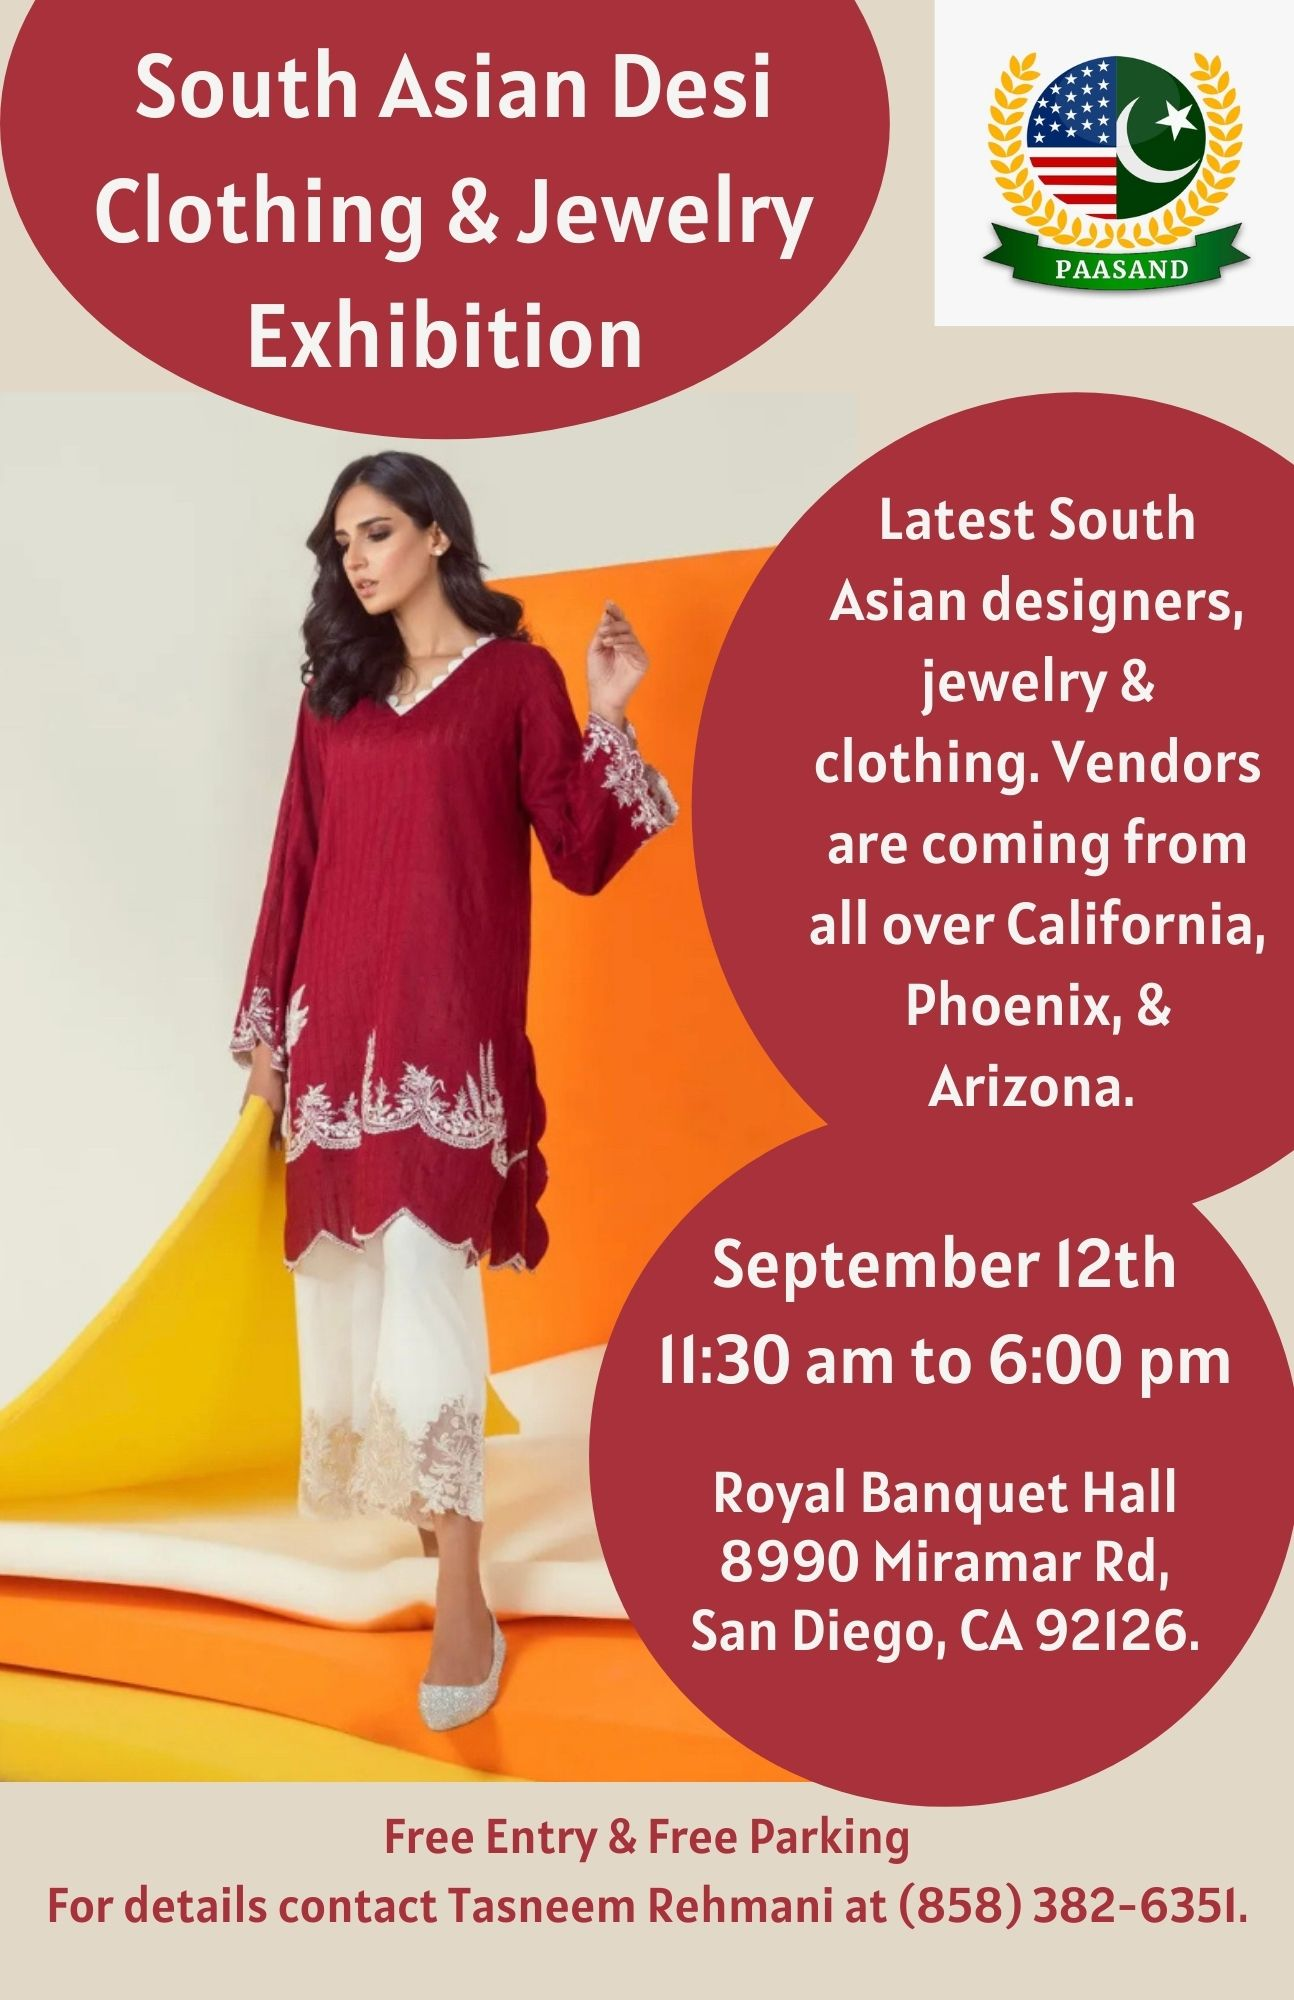 South Asian Desi Clothing & Jewelry Exhibition (1)